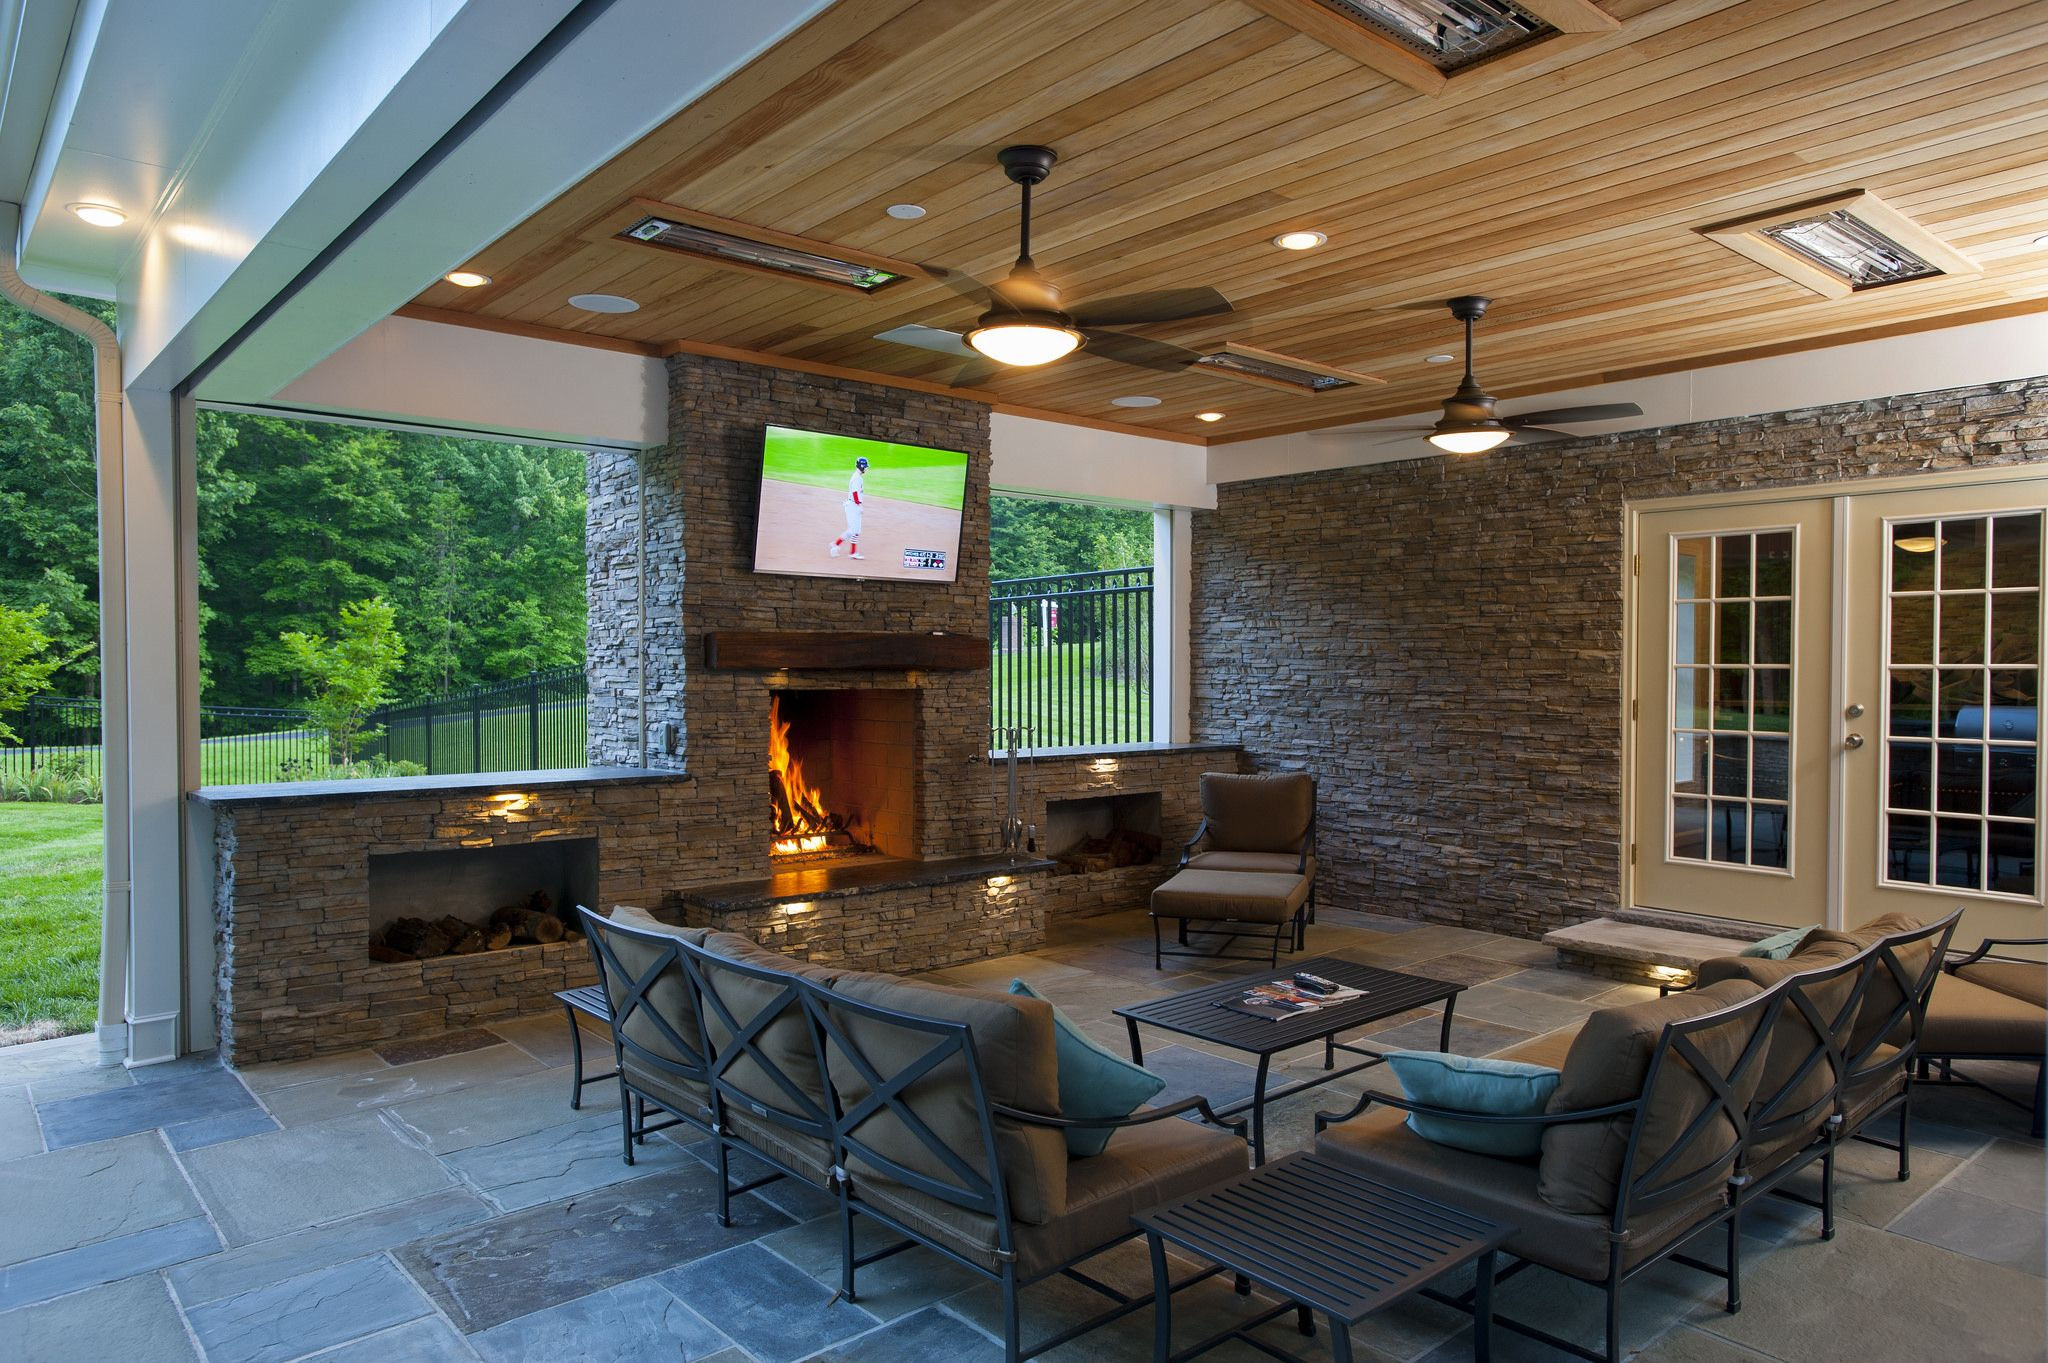 21st Century Outdoor Living in Clifton, VA #backyardpatiodesigns